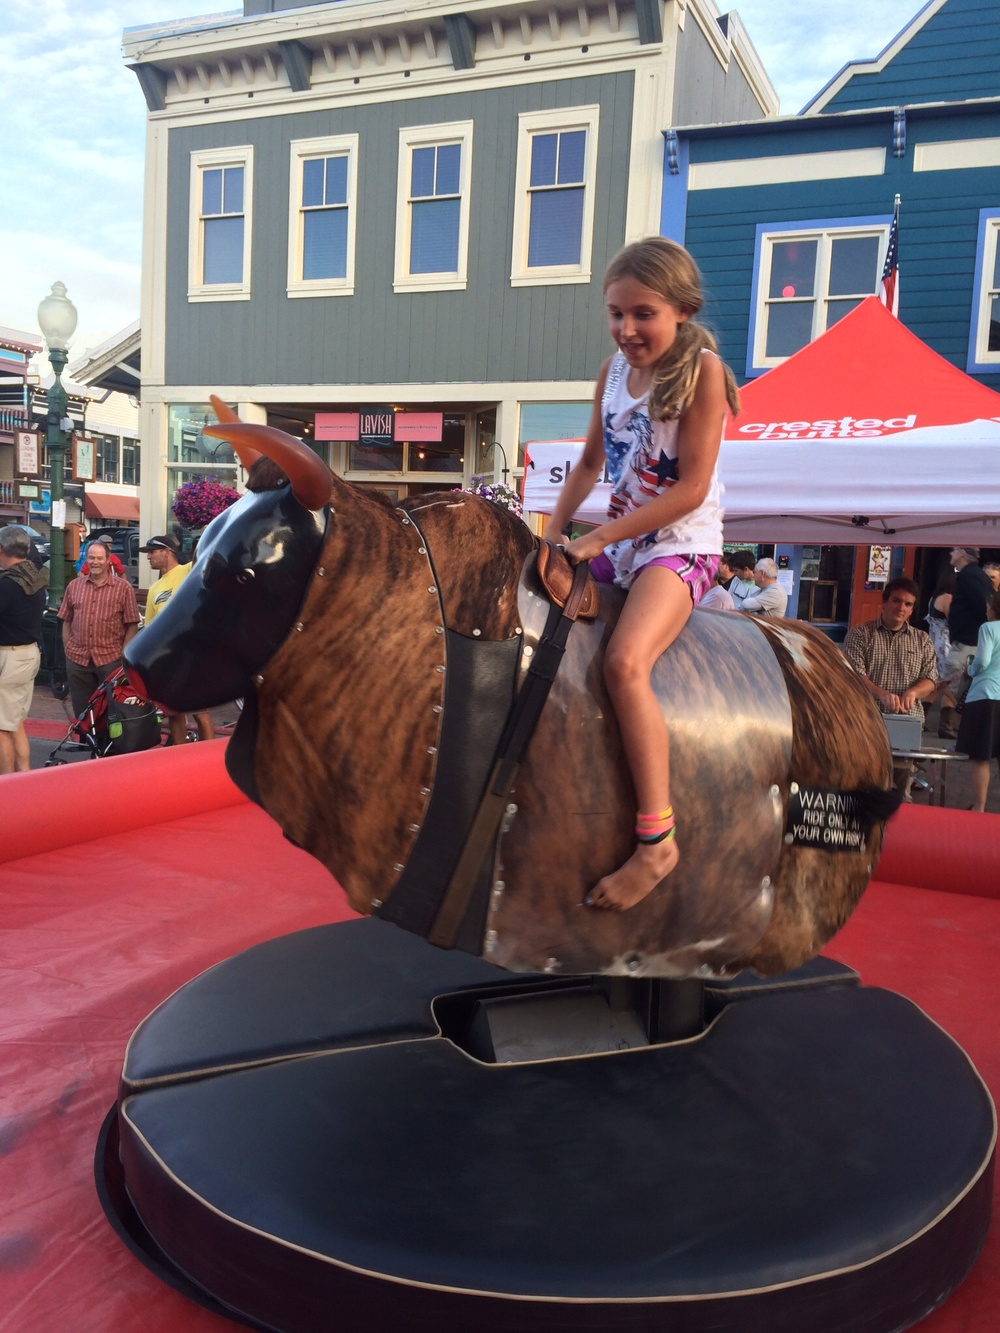 Sierra Nevaday bull ride, moderated for kids....